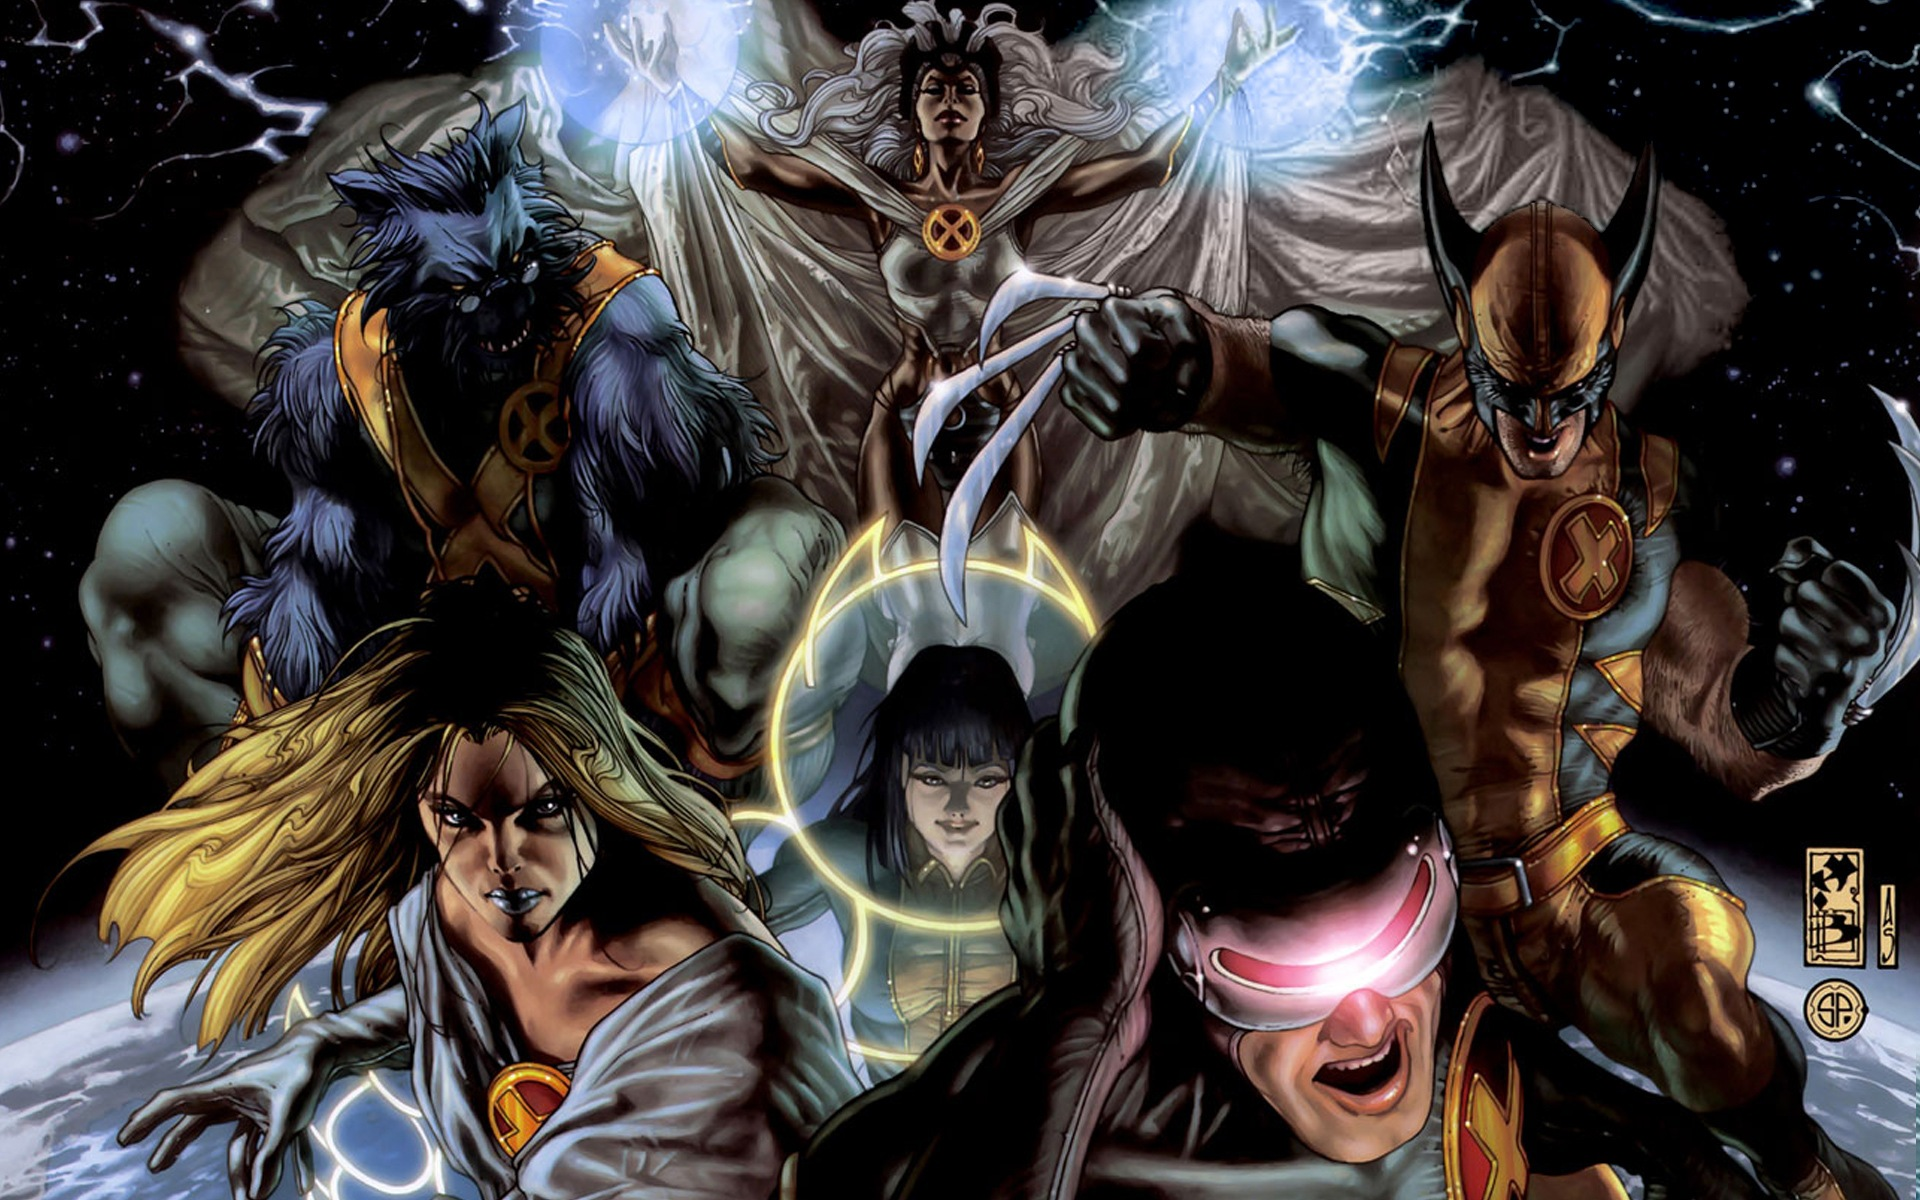 Astonishing X Men desktop wallpaper 1920x1200